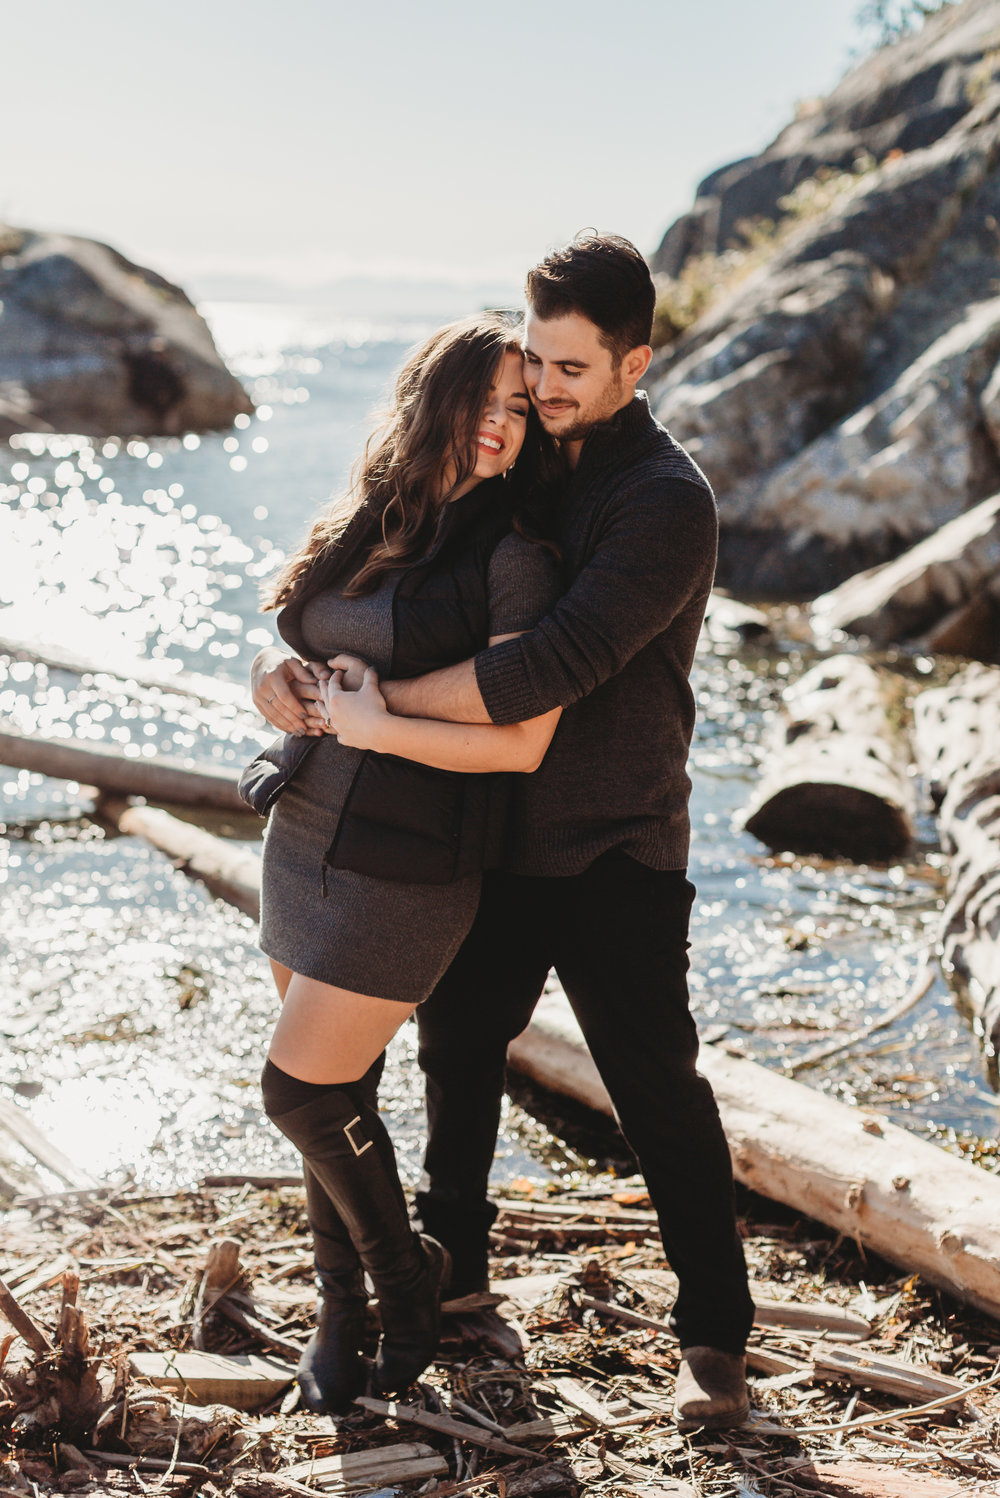 Lighthouse Park Engagement Photos - Vancouver Wedding Photographer & Videographer - Sunshine Coast Wedding Photos - Sunshine Coast Wedding Photographer - Jennifer Picard Photography - IMG_5710.jpg